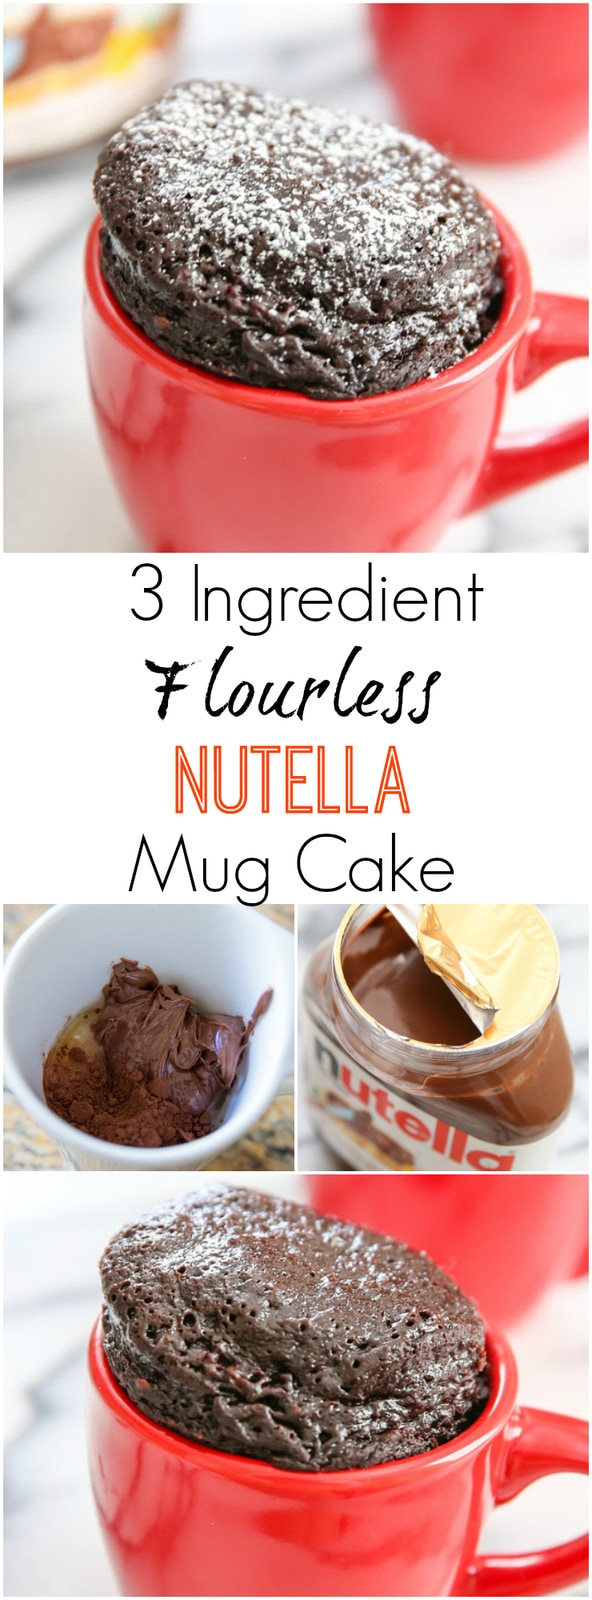 3 Ingredient Flourless Nutella Mug Cake. Super easy, gluten free, single serving, rich and decadent microwave dessert.